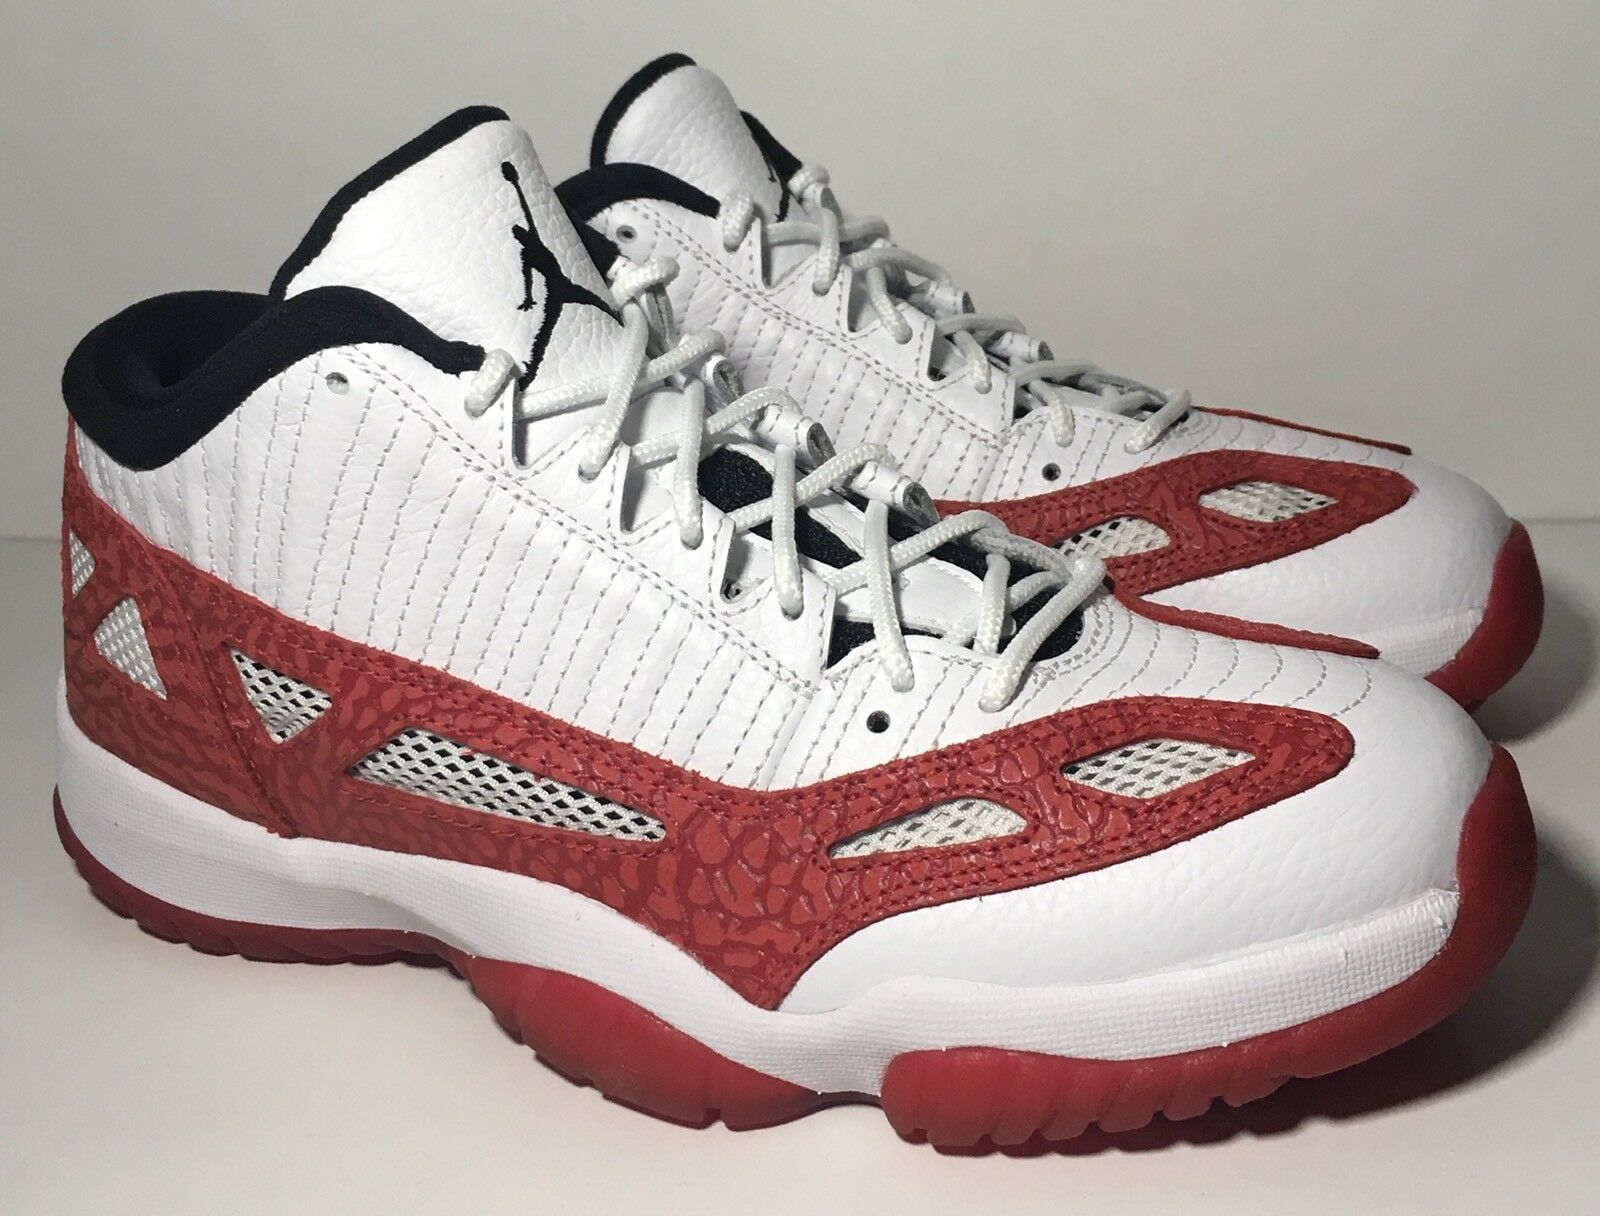 SZ.7 Men's Nike Air Jordan 11 XI Retro Low IE 919712-101 White/GymRed.Black